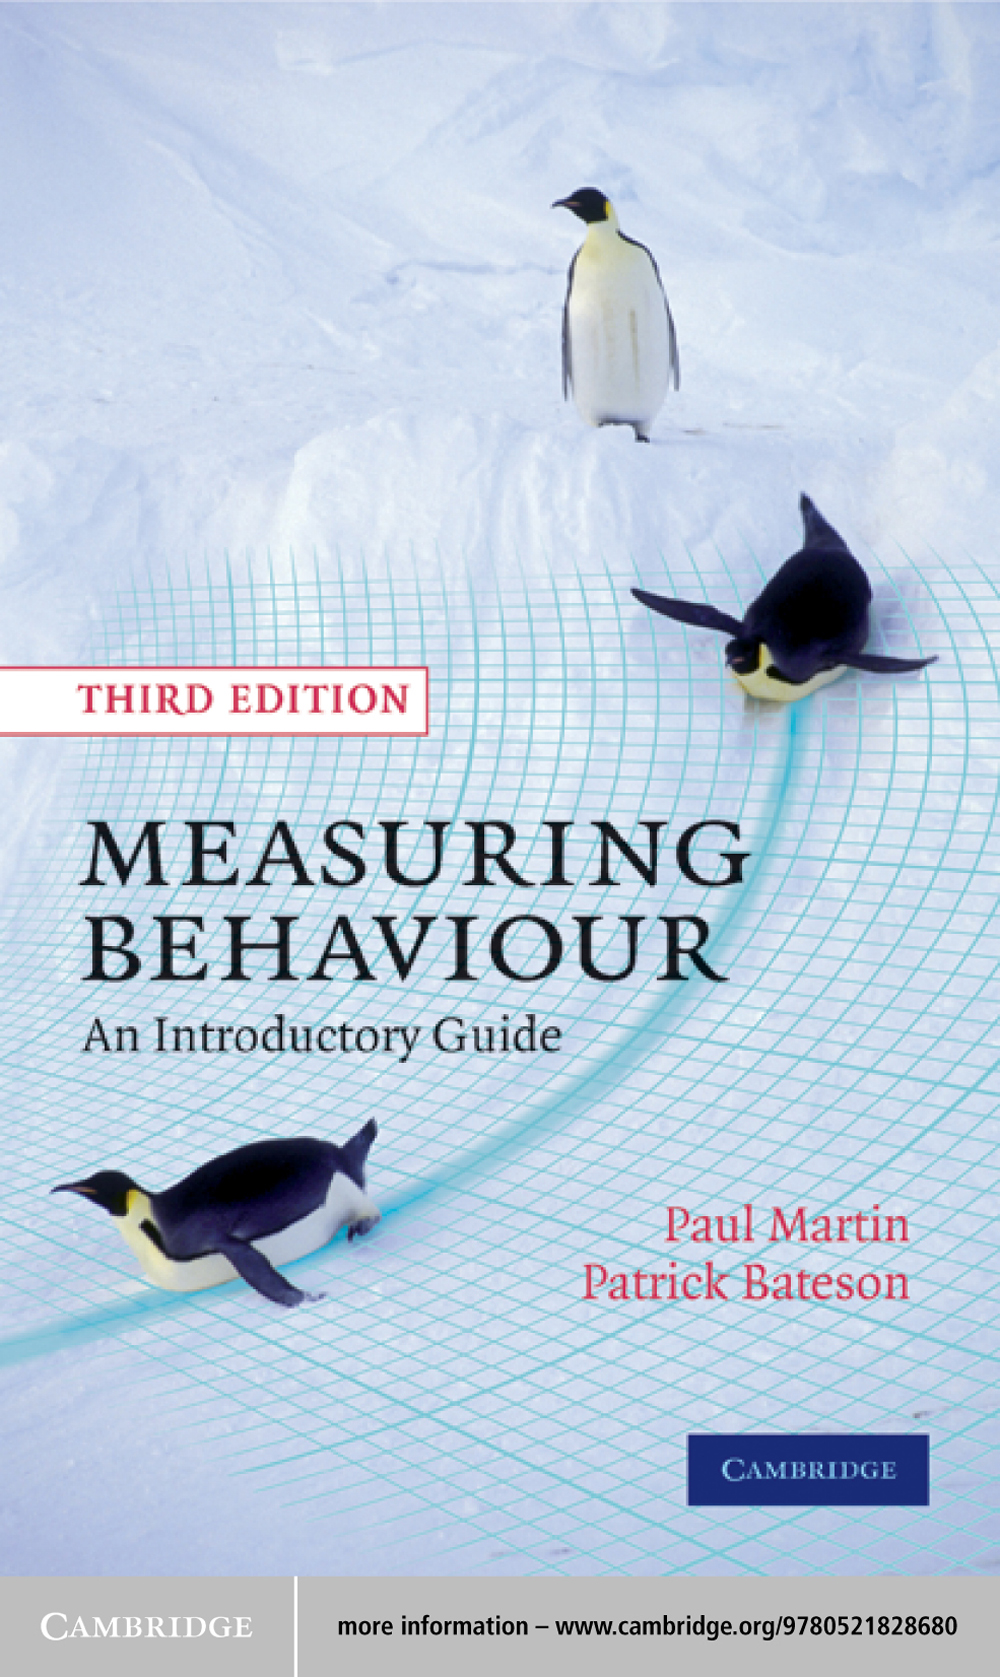 Measuring Behaviour An Introductory Guide